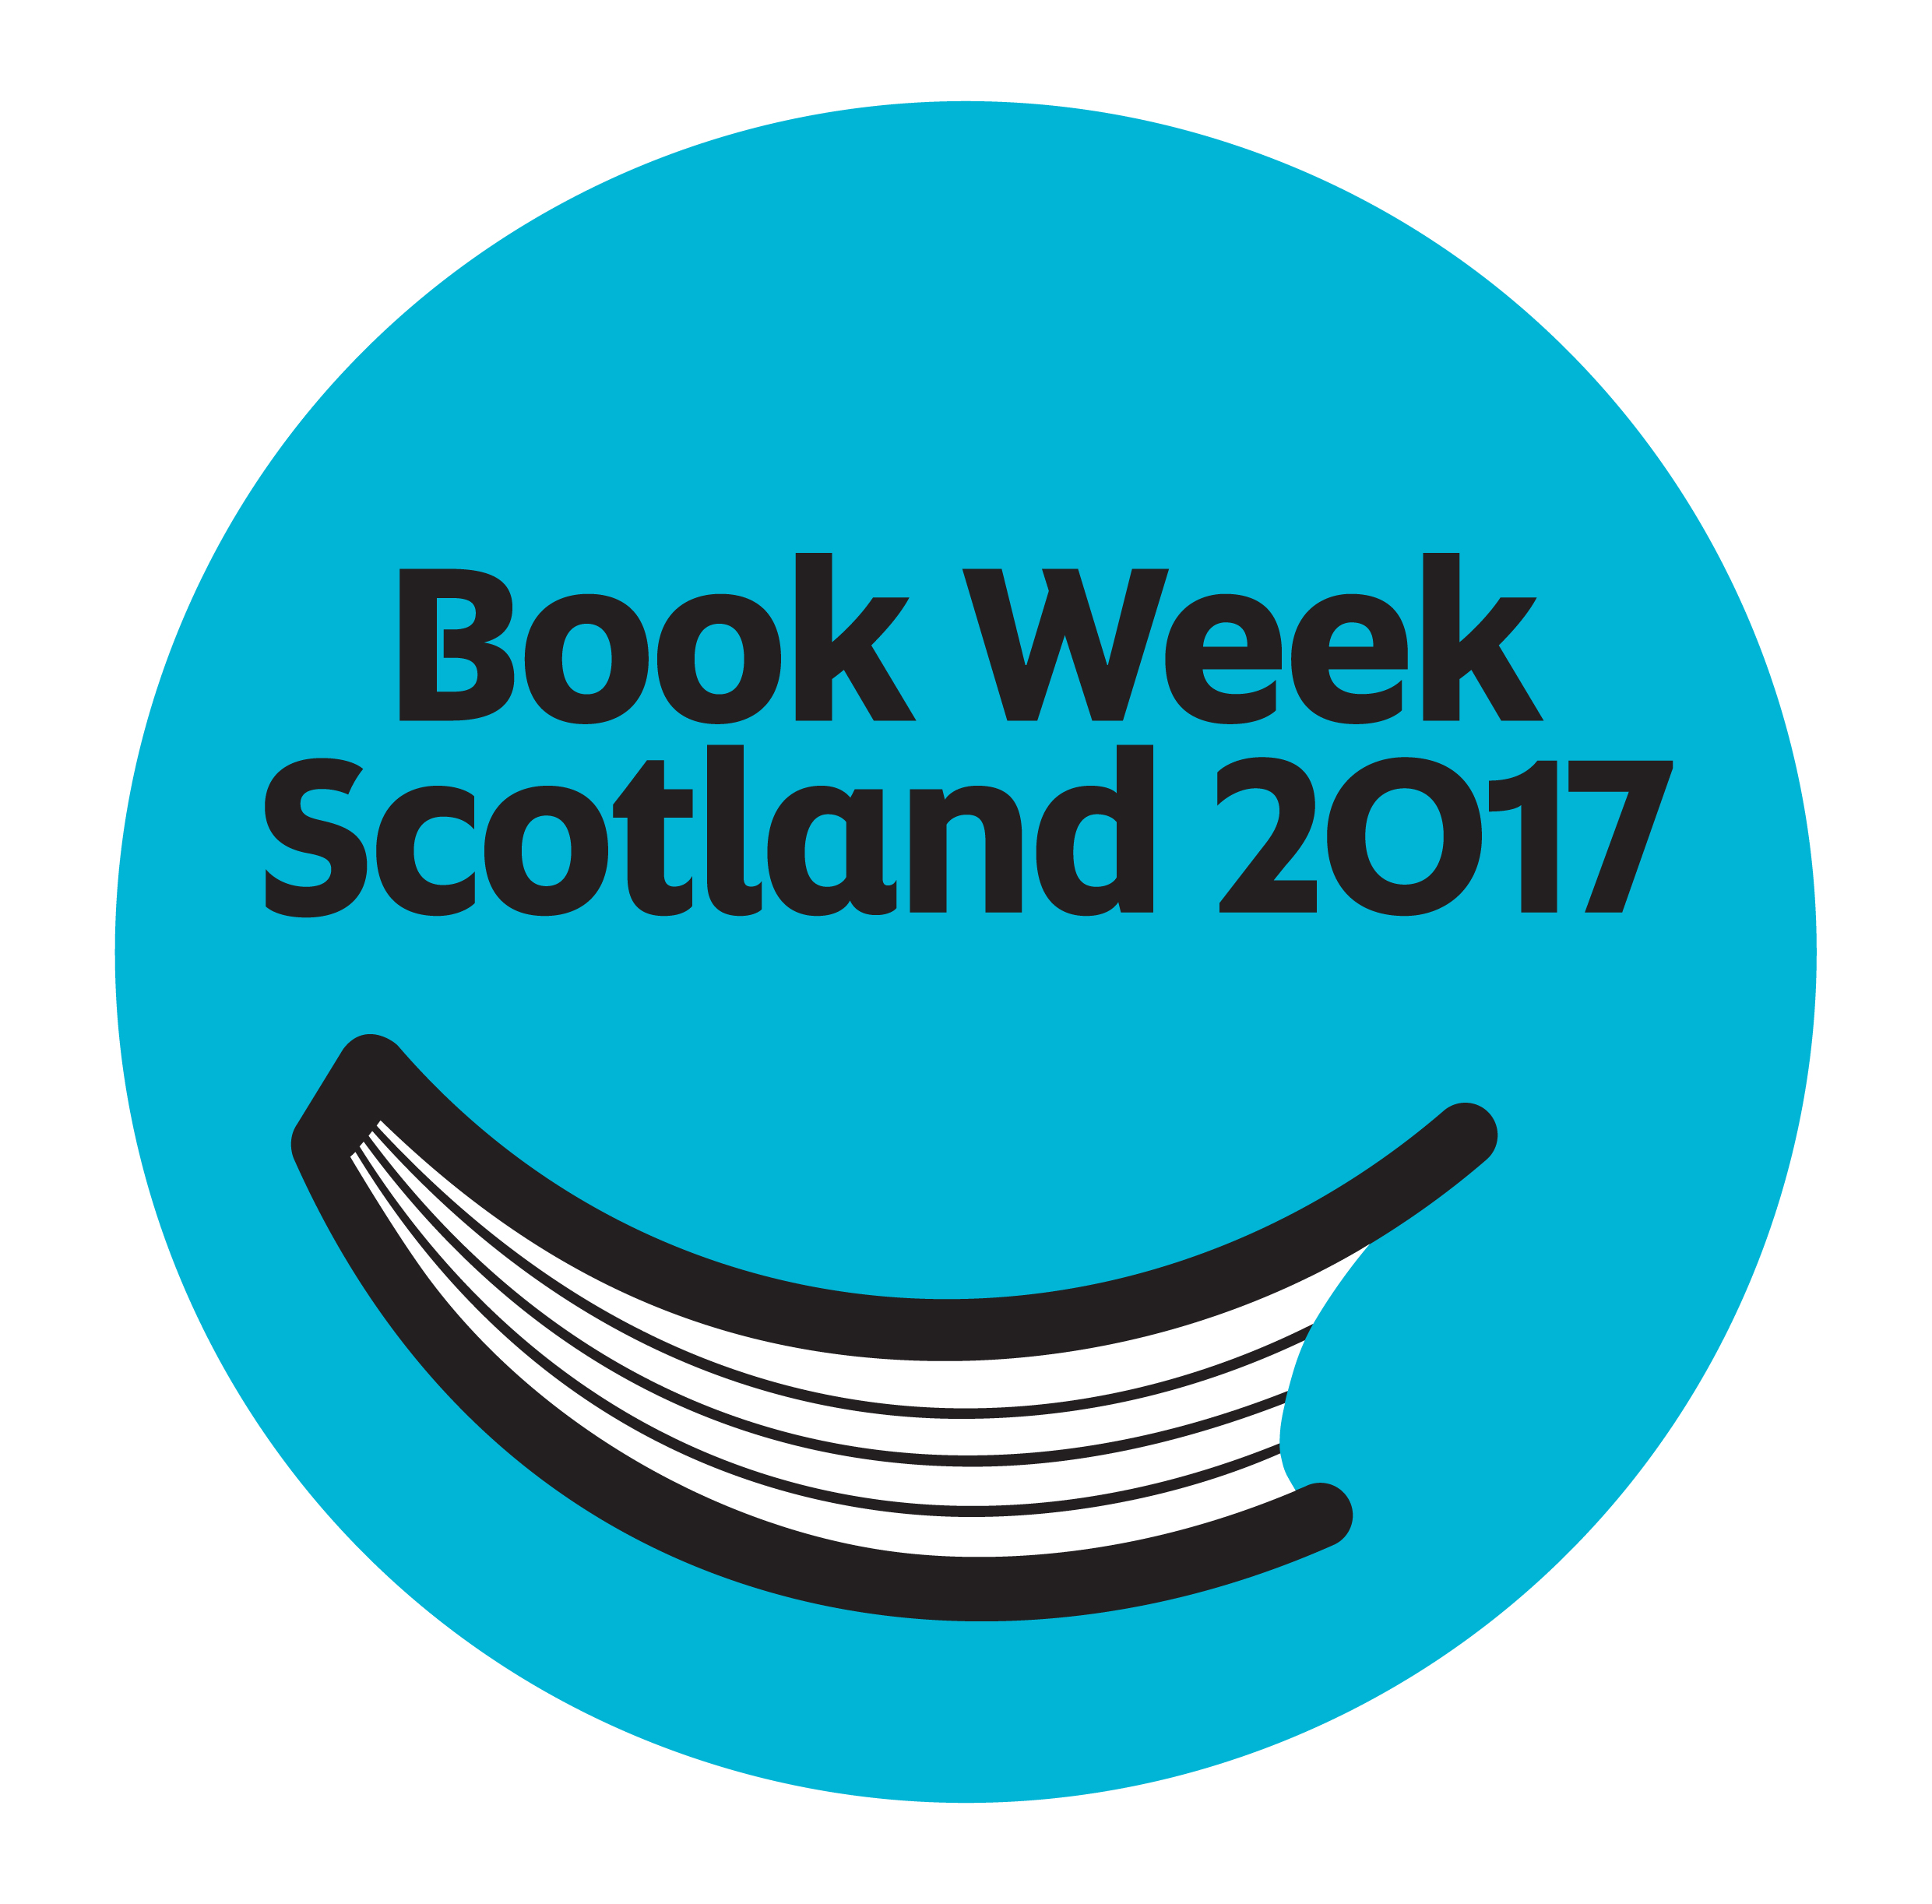 Book Week Scotland 2017 logo